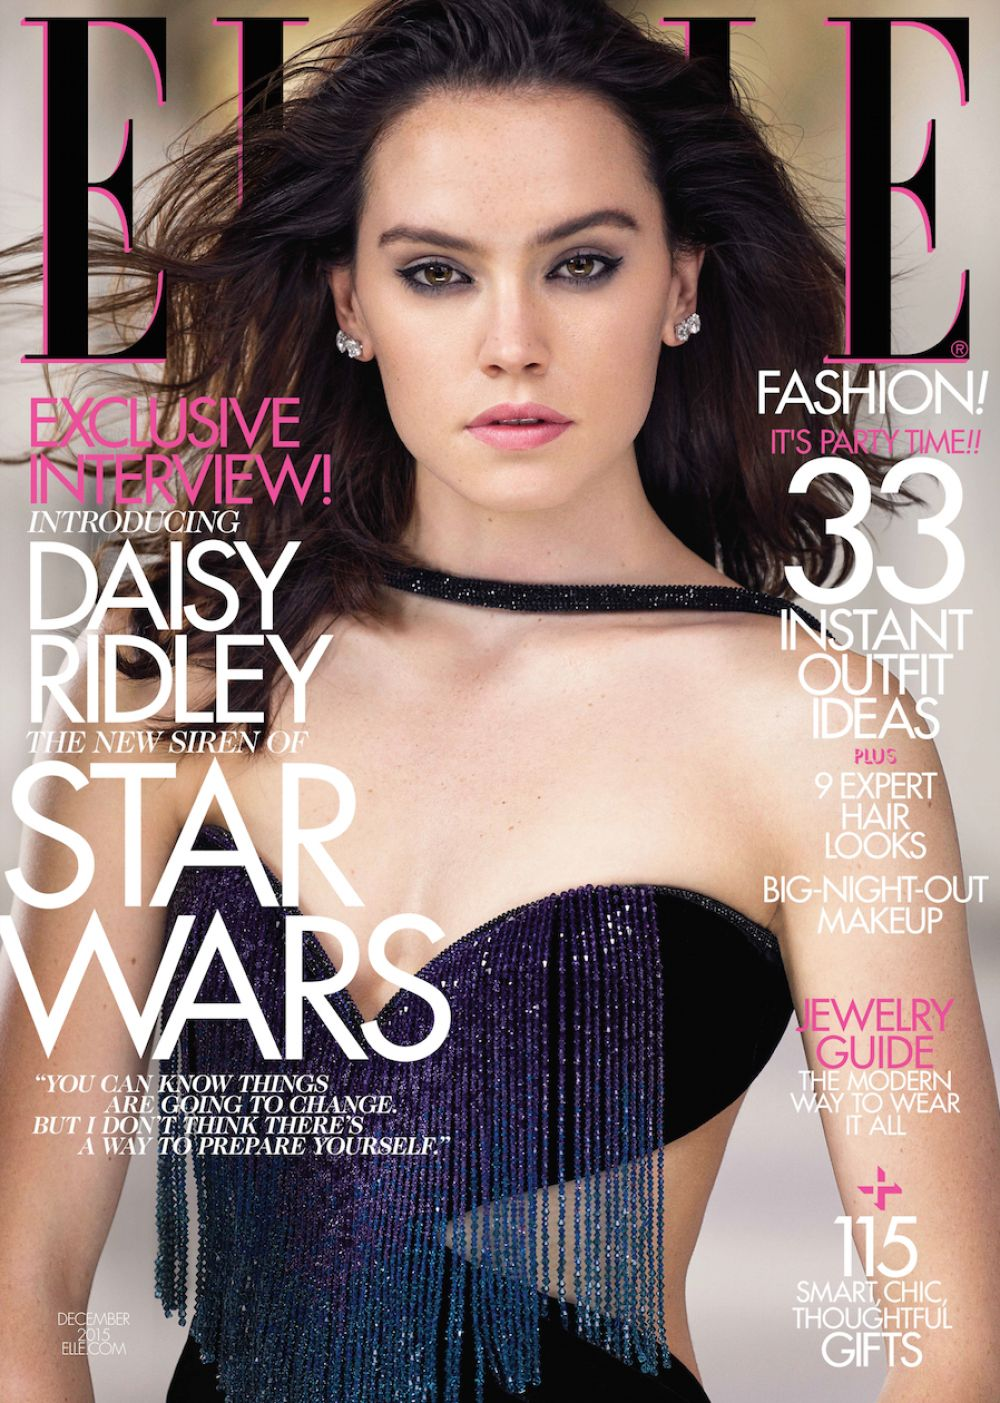 DAISY RIDLEY by Mark Seliger for Elle Magazine, December 2015 Issue